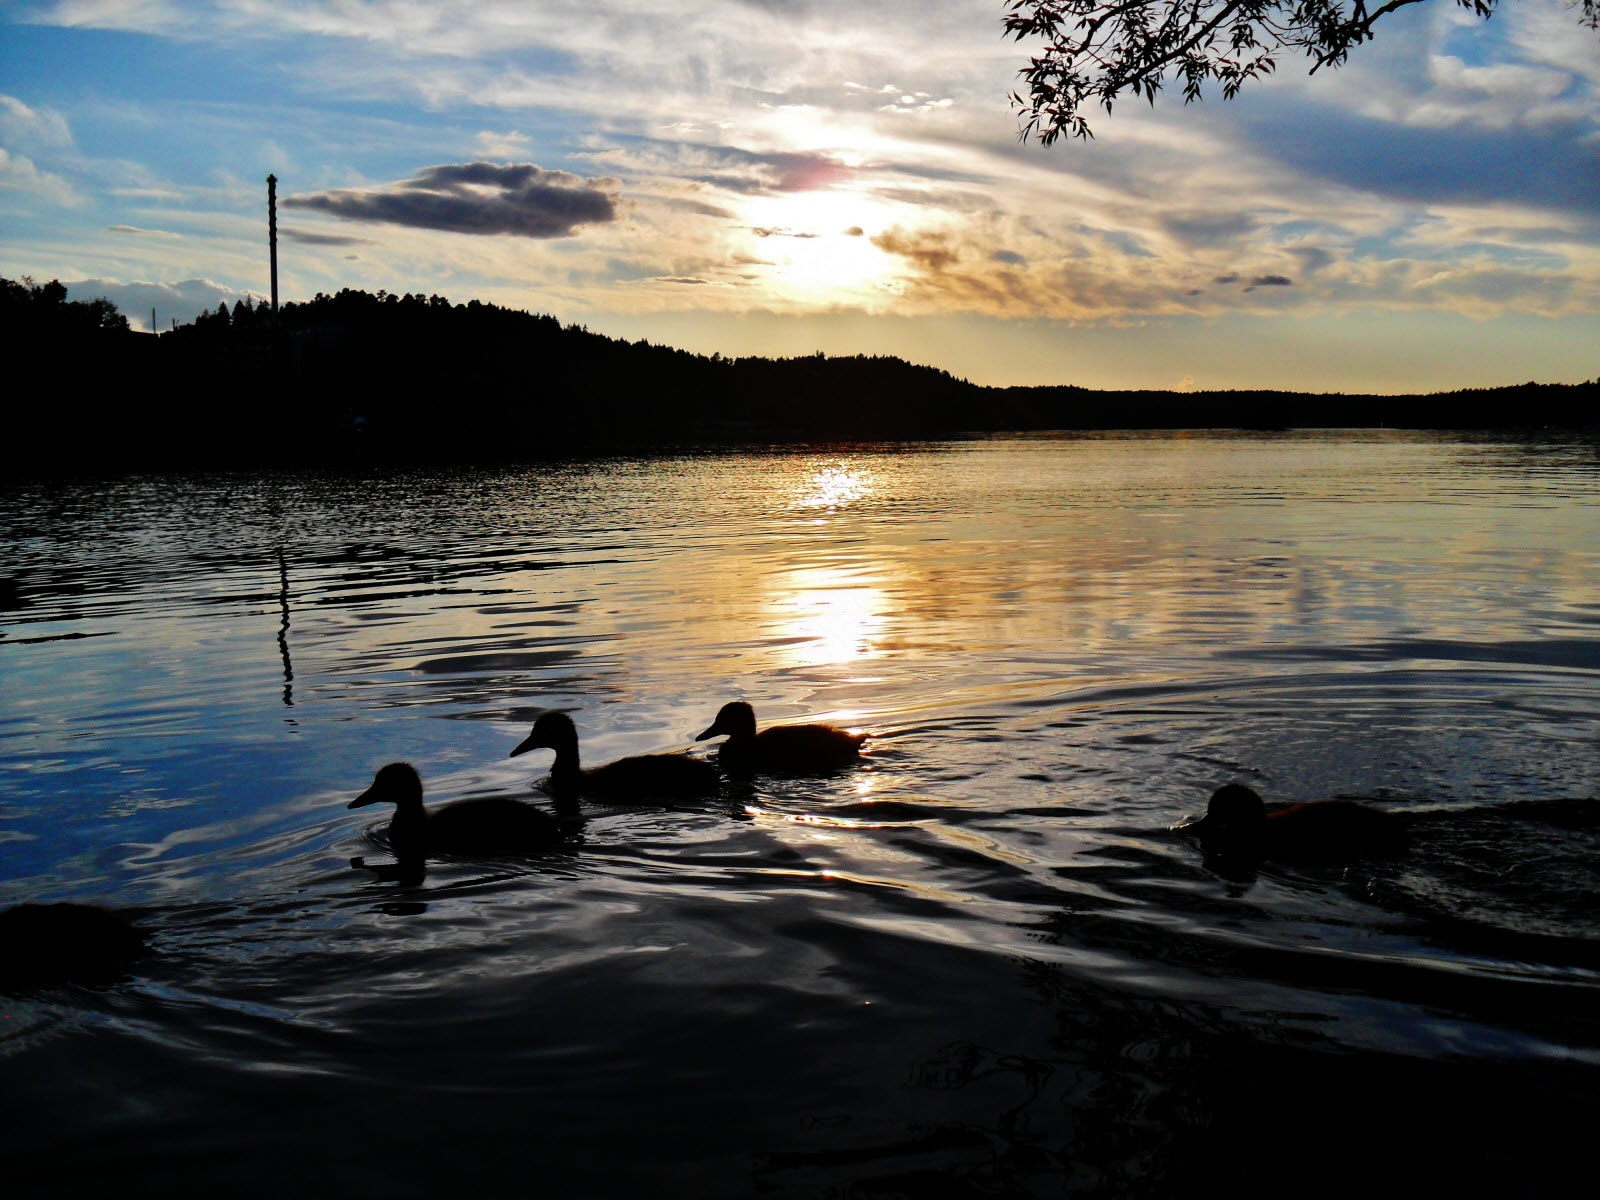 sweden-sodertalje-ducklings.jpg